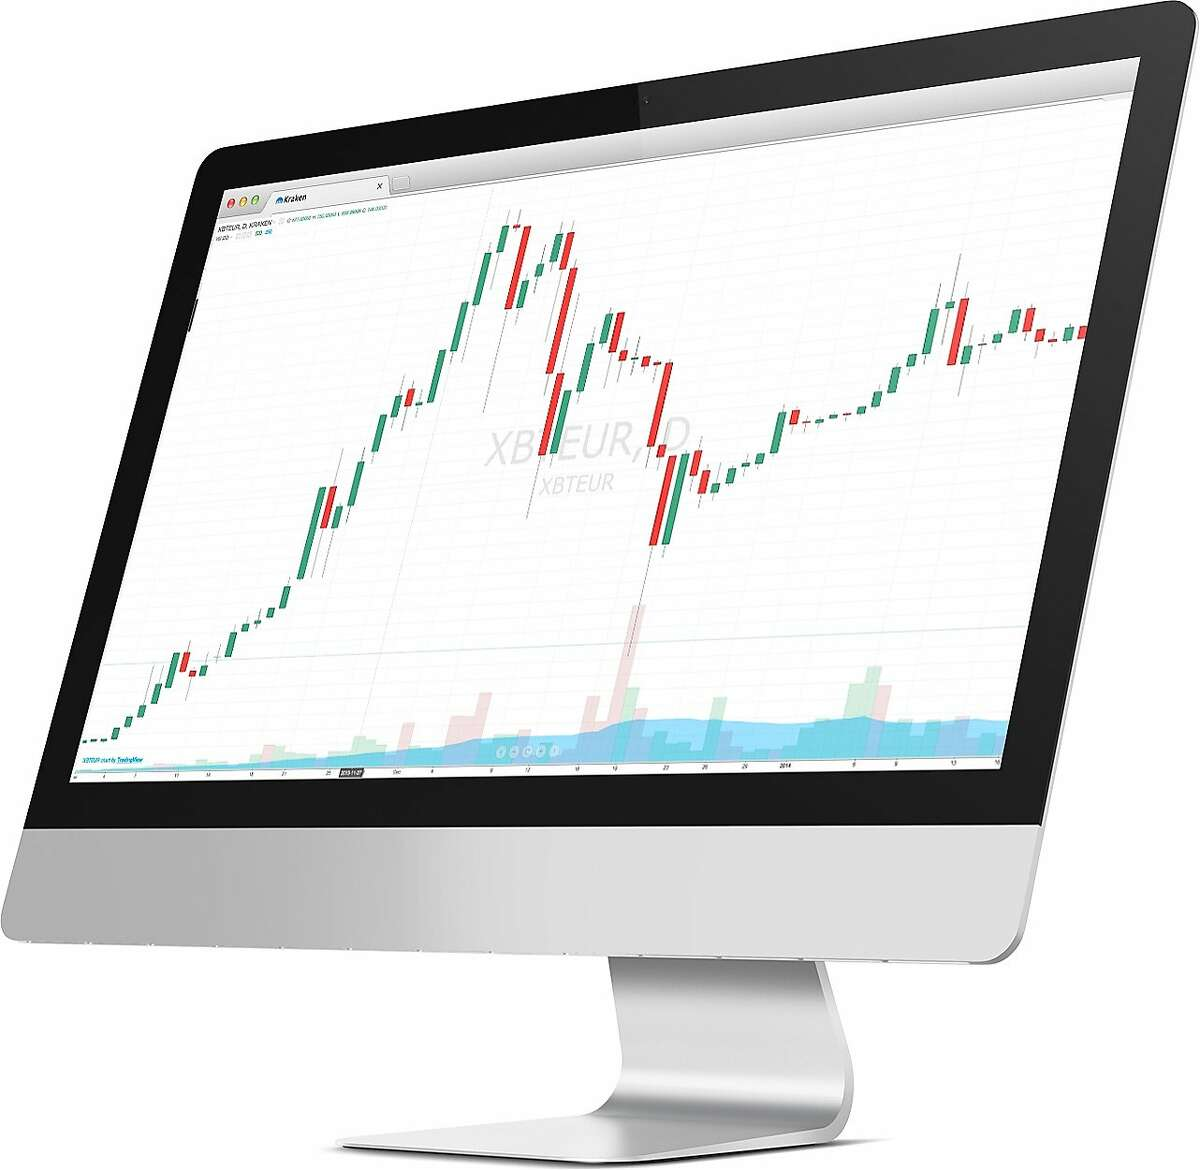 An image from cryptocurrency exchange Kraken's website shows a chart of prices.